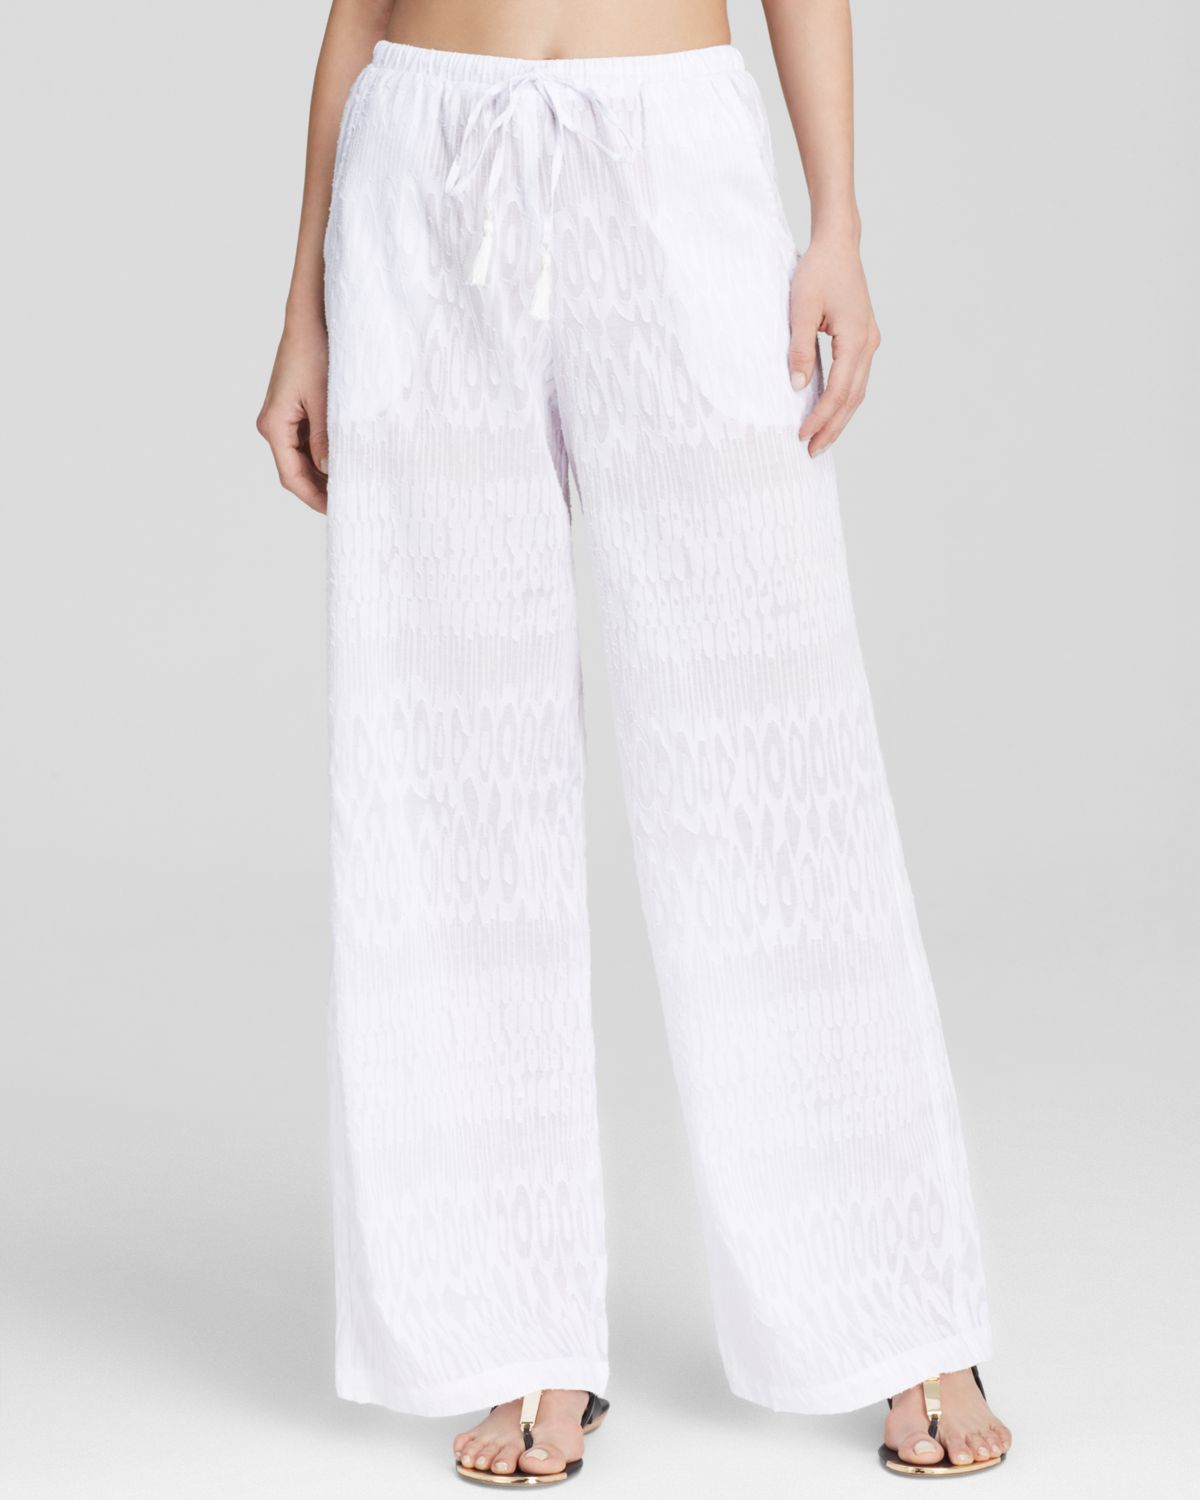 Tommy bahama Beach Cover Up Pants in White | Lyst